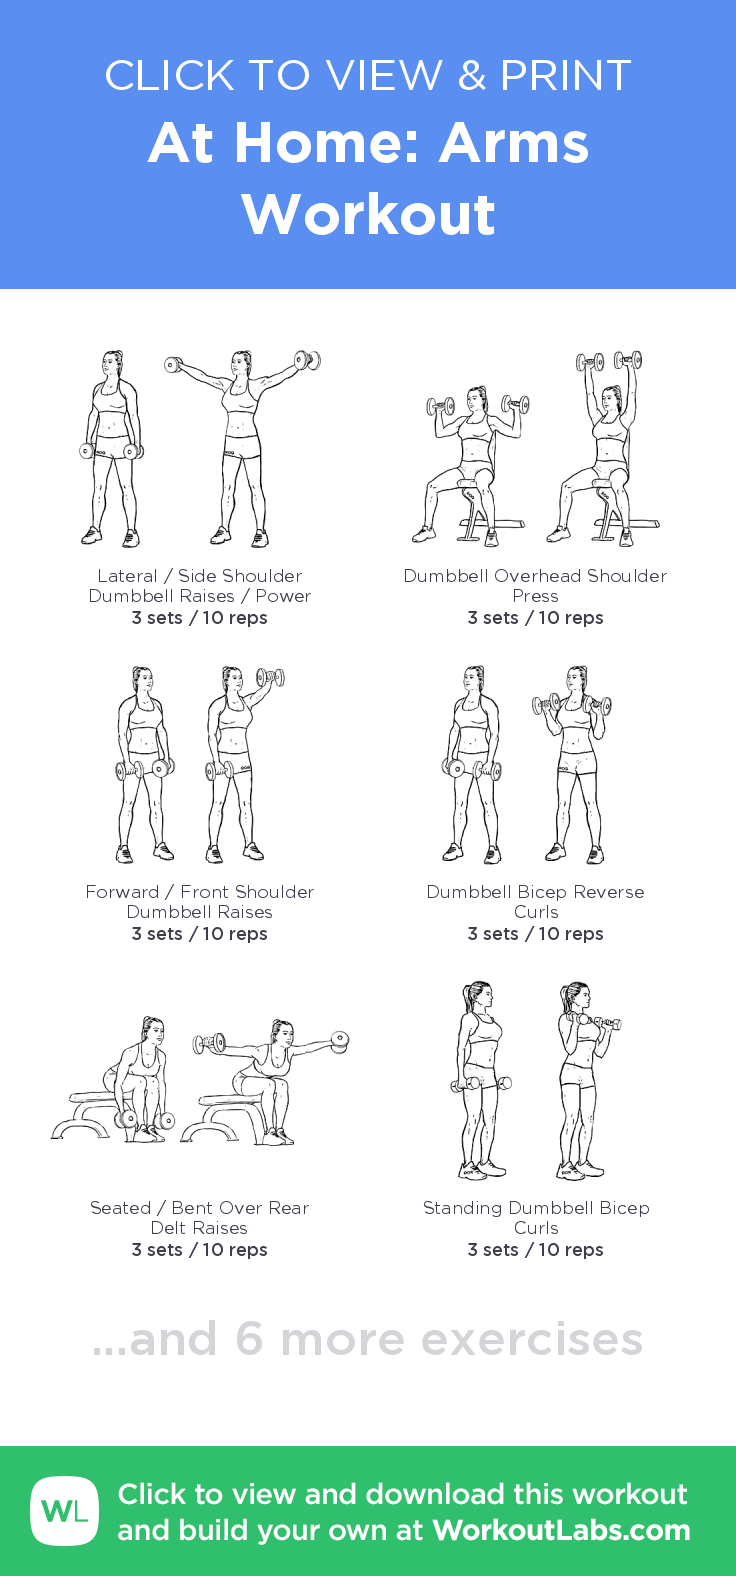 At Home Arms Workout Click To View And Print This Illustrated Exercise Plan Created With Workoutlabsfi Arm Workout Upper Body Dumbbell Workout Workout Labs